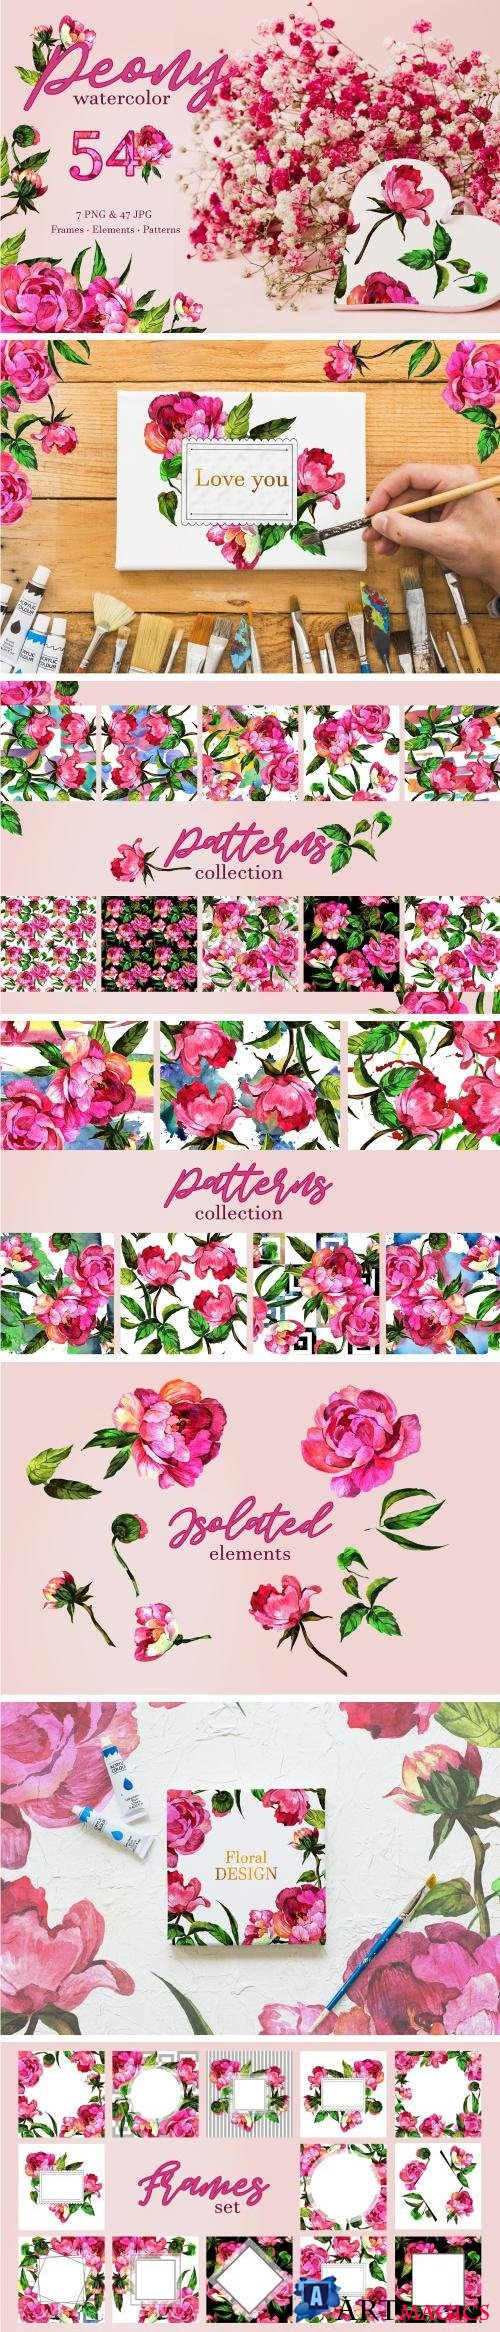 Peony Watercolor png - 3307818